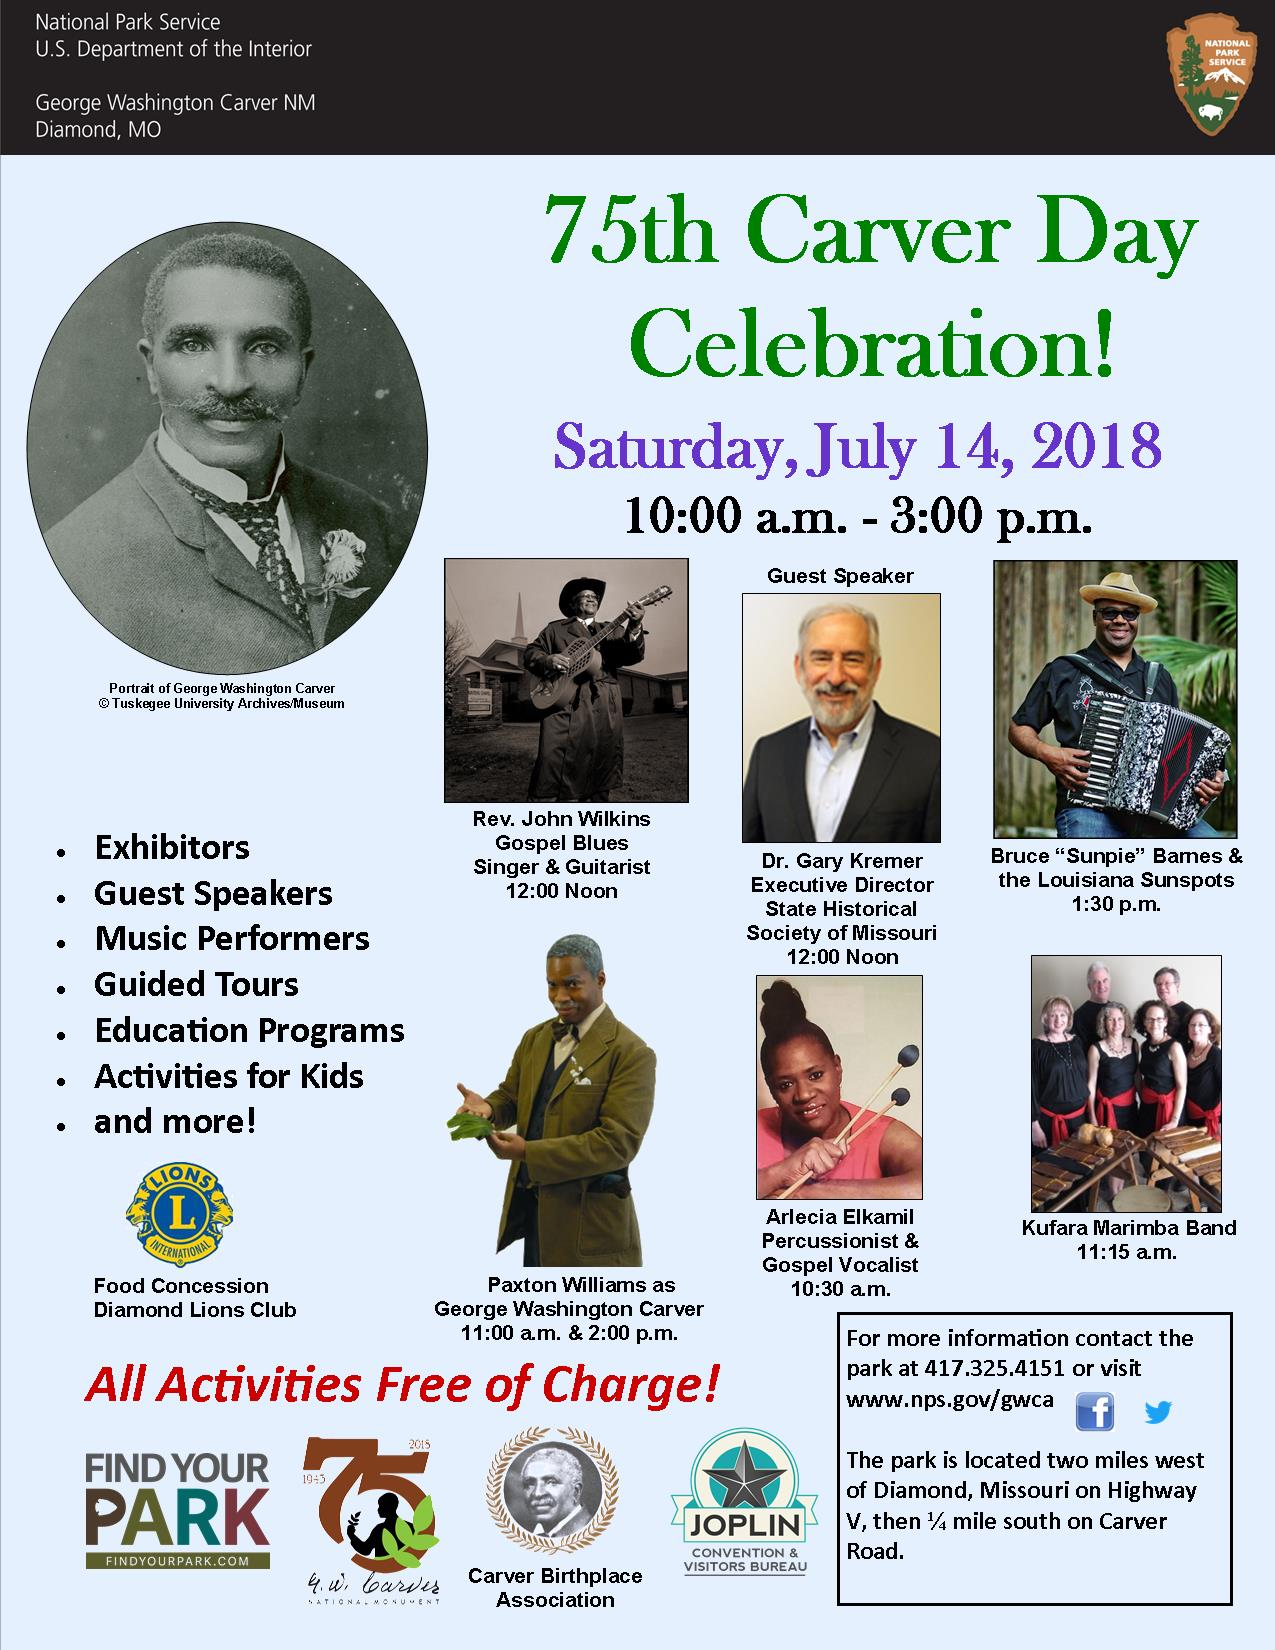 The photograph is for a park special event: Carver Day 2018. The poster includes several images of guests for the event as well as informational text.